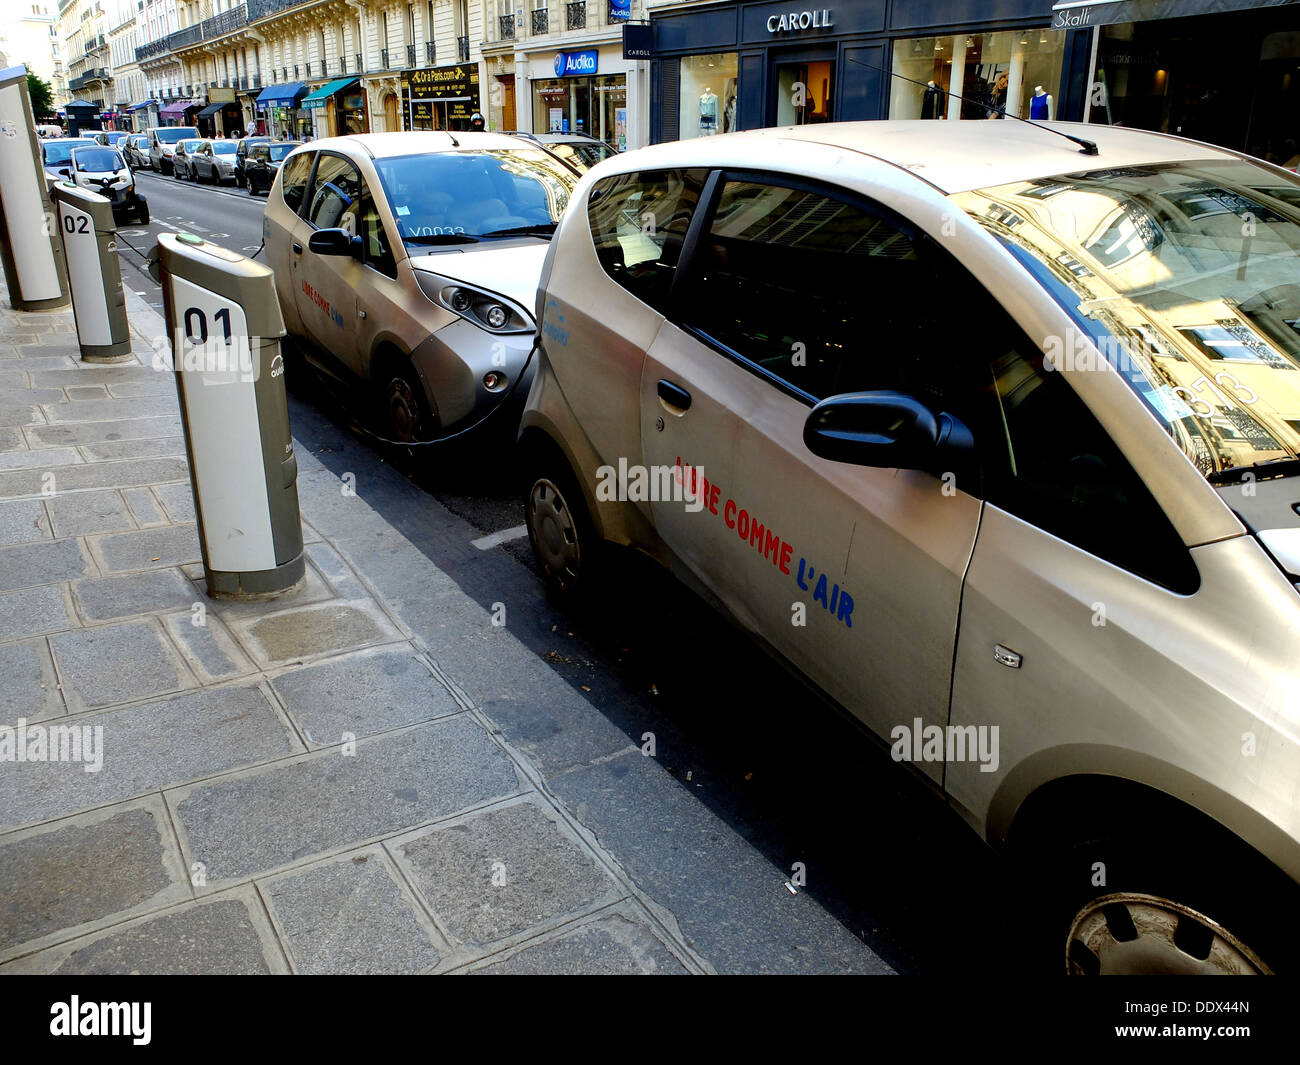 Autolib,electric car recharge at the base in the street, Paris, France, Europe - Stock Image